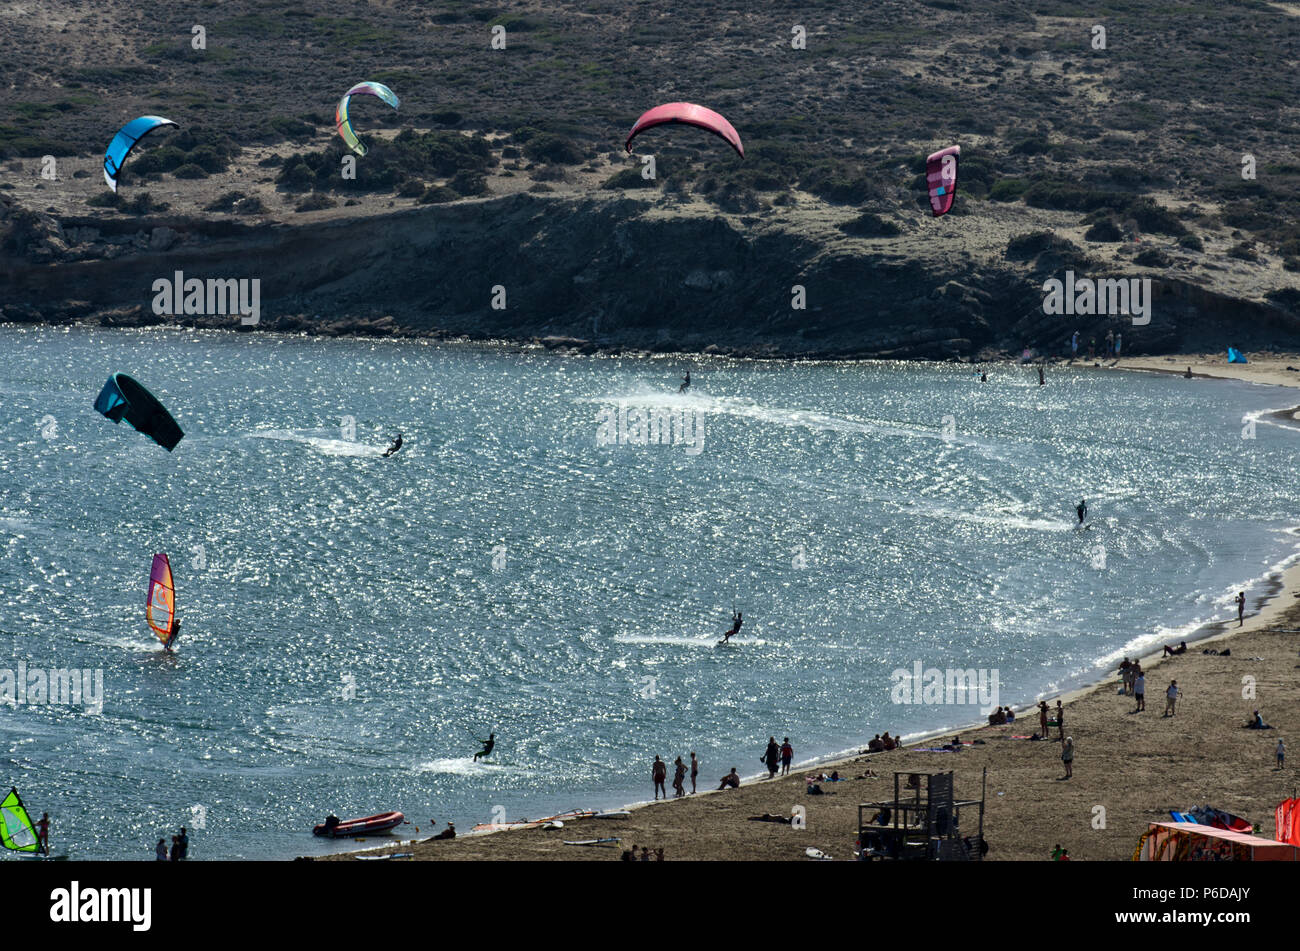 Kitesurfers on the waves of the Mediterranean sea at Cape Prasonisi (Greece) - Stock Image